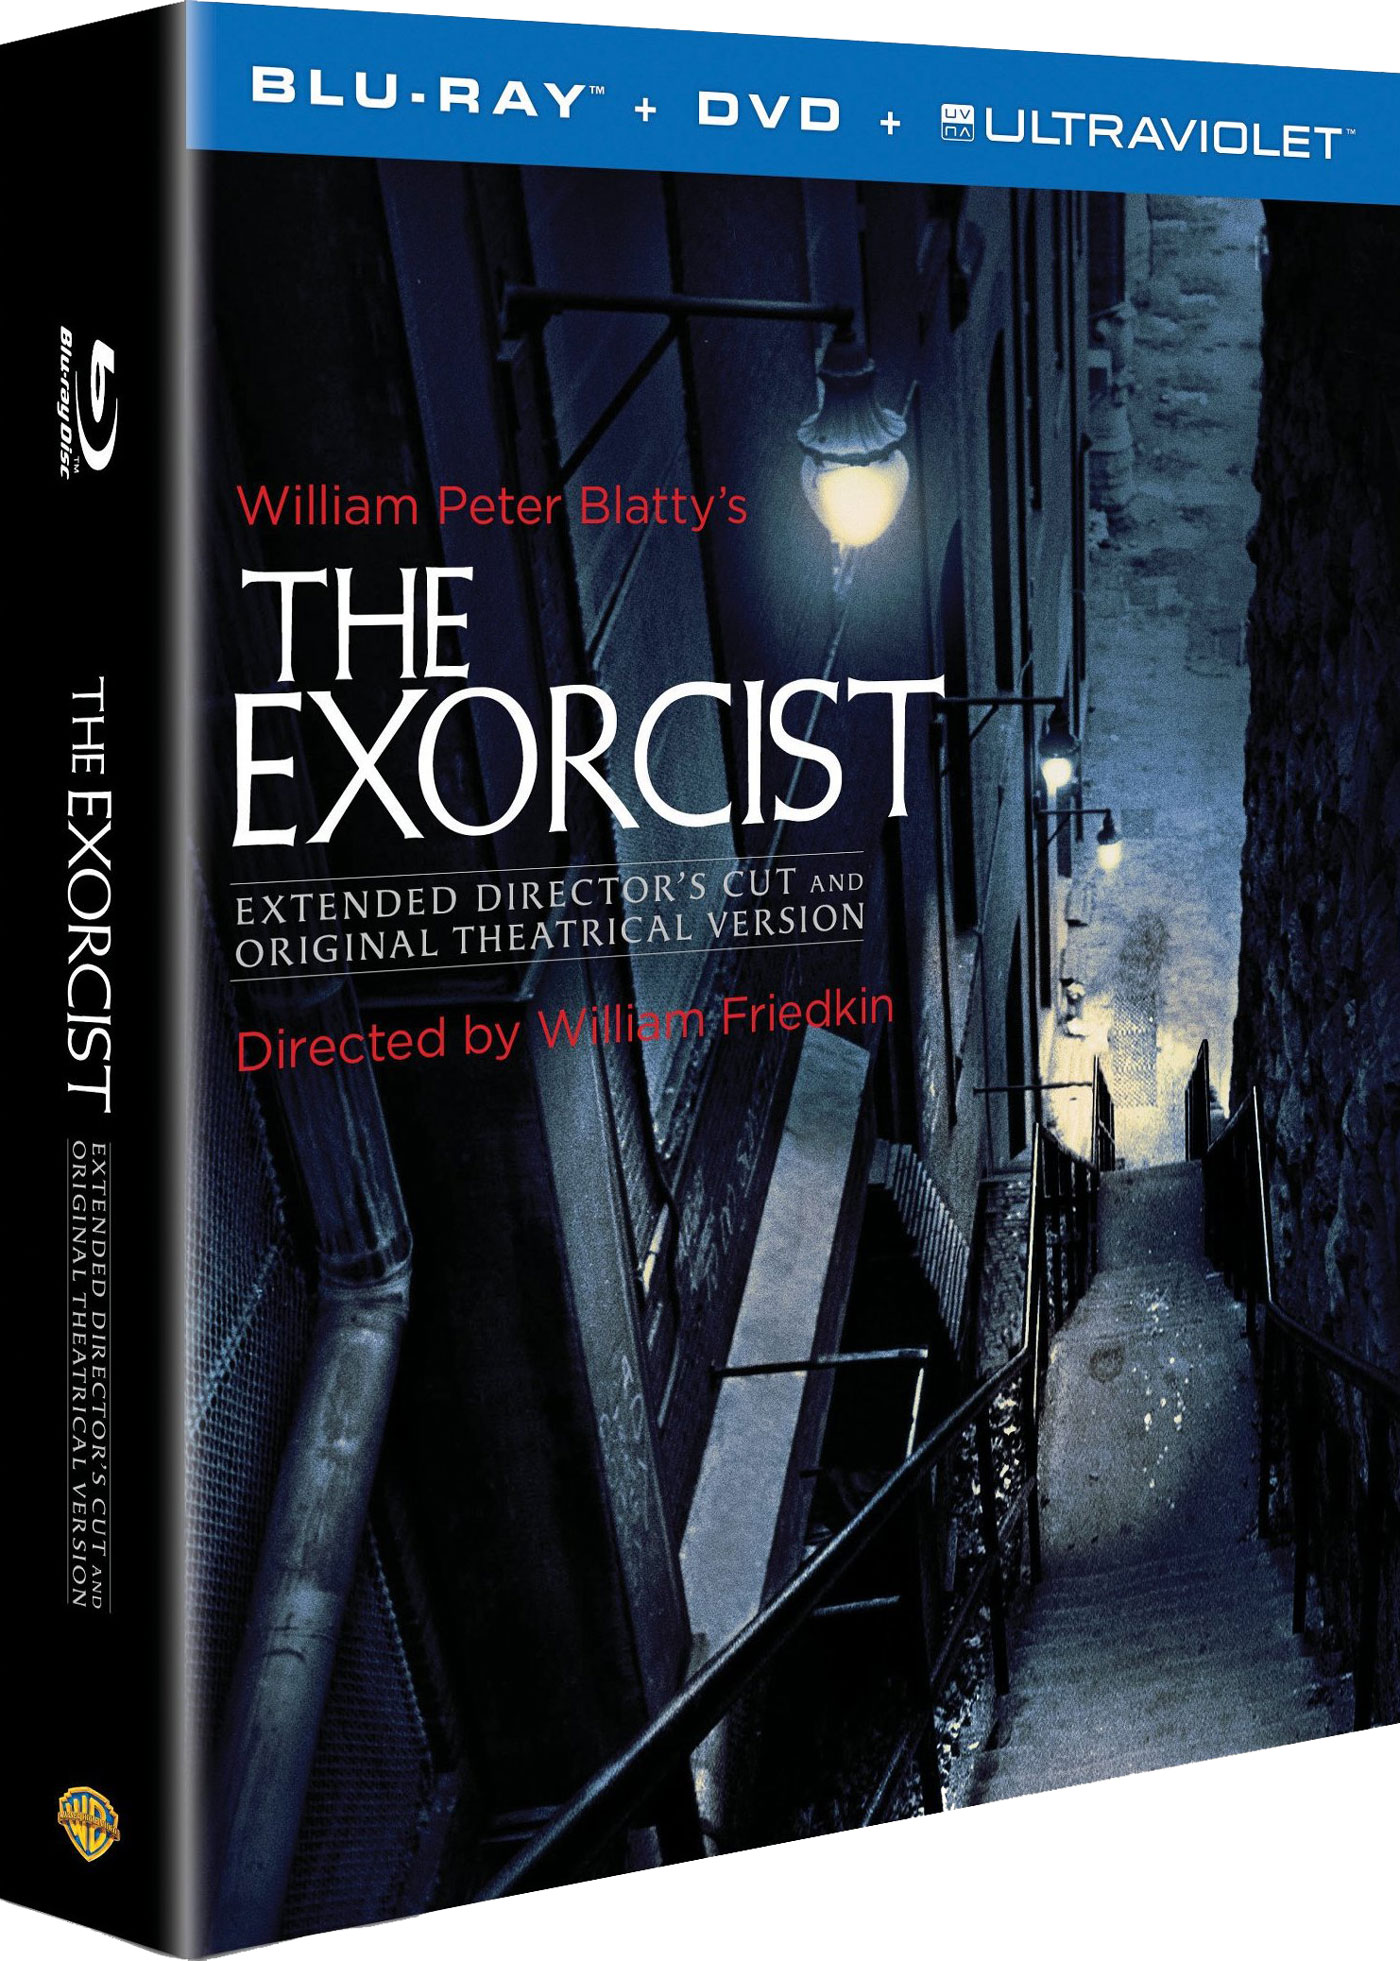 The Exorcist 40th Anniversary Blu-ray cover